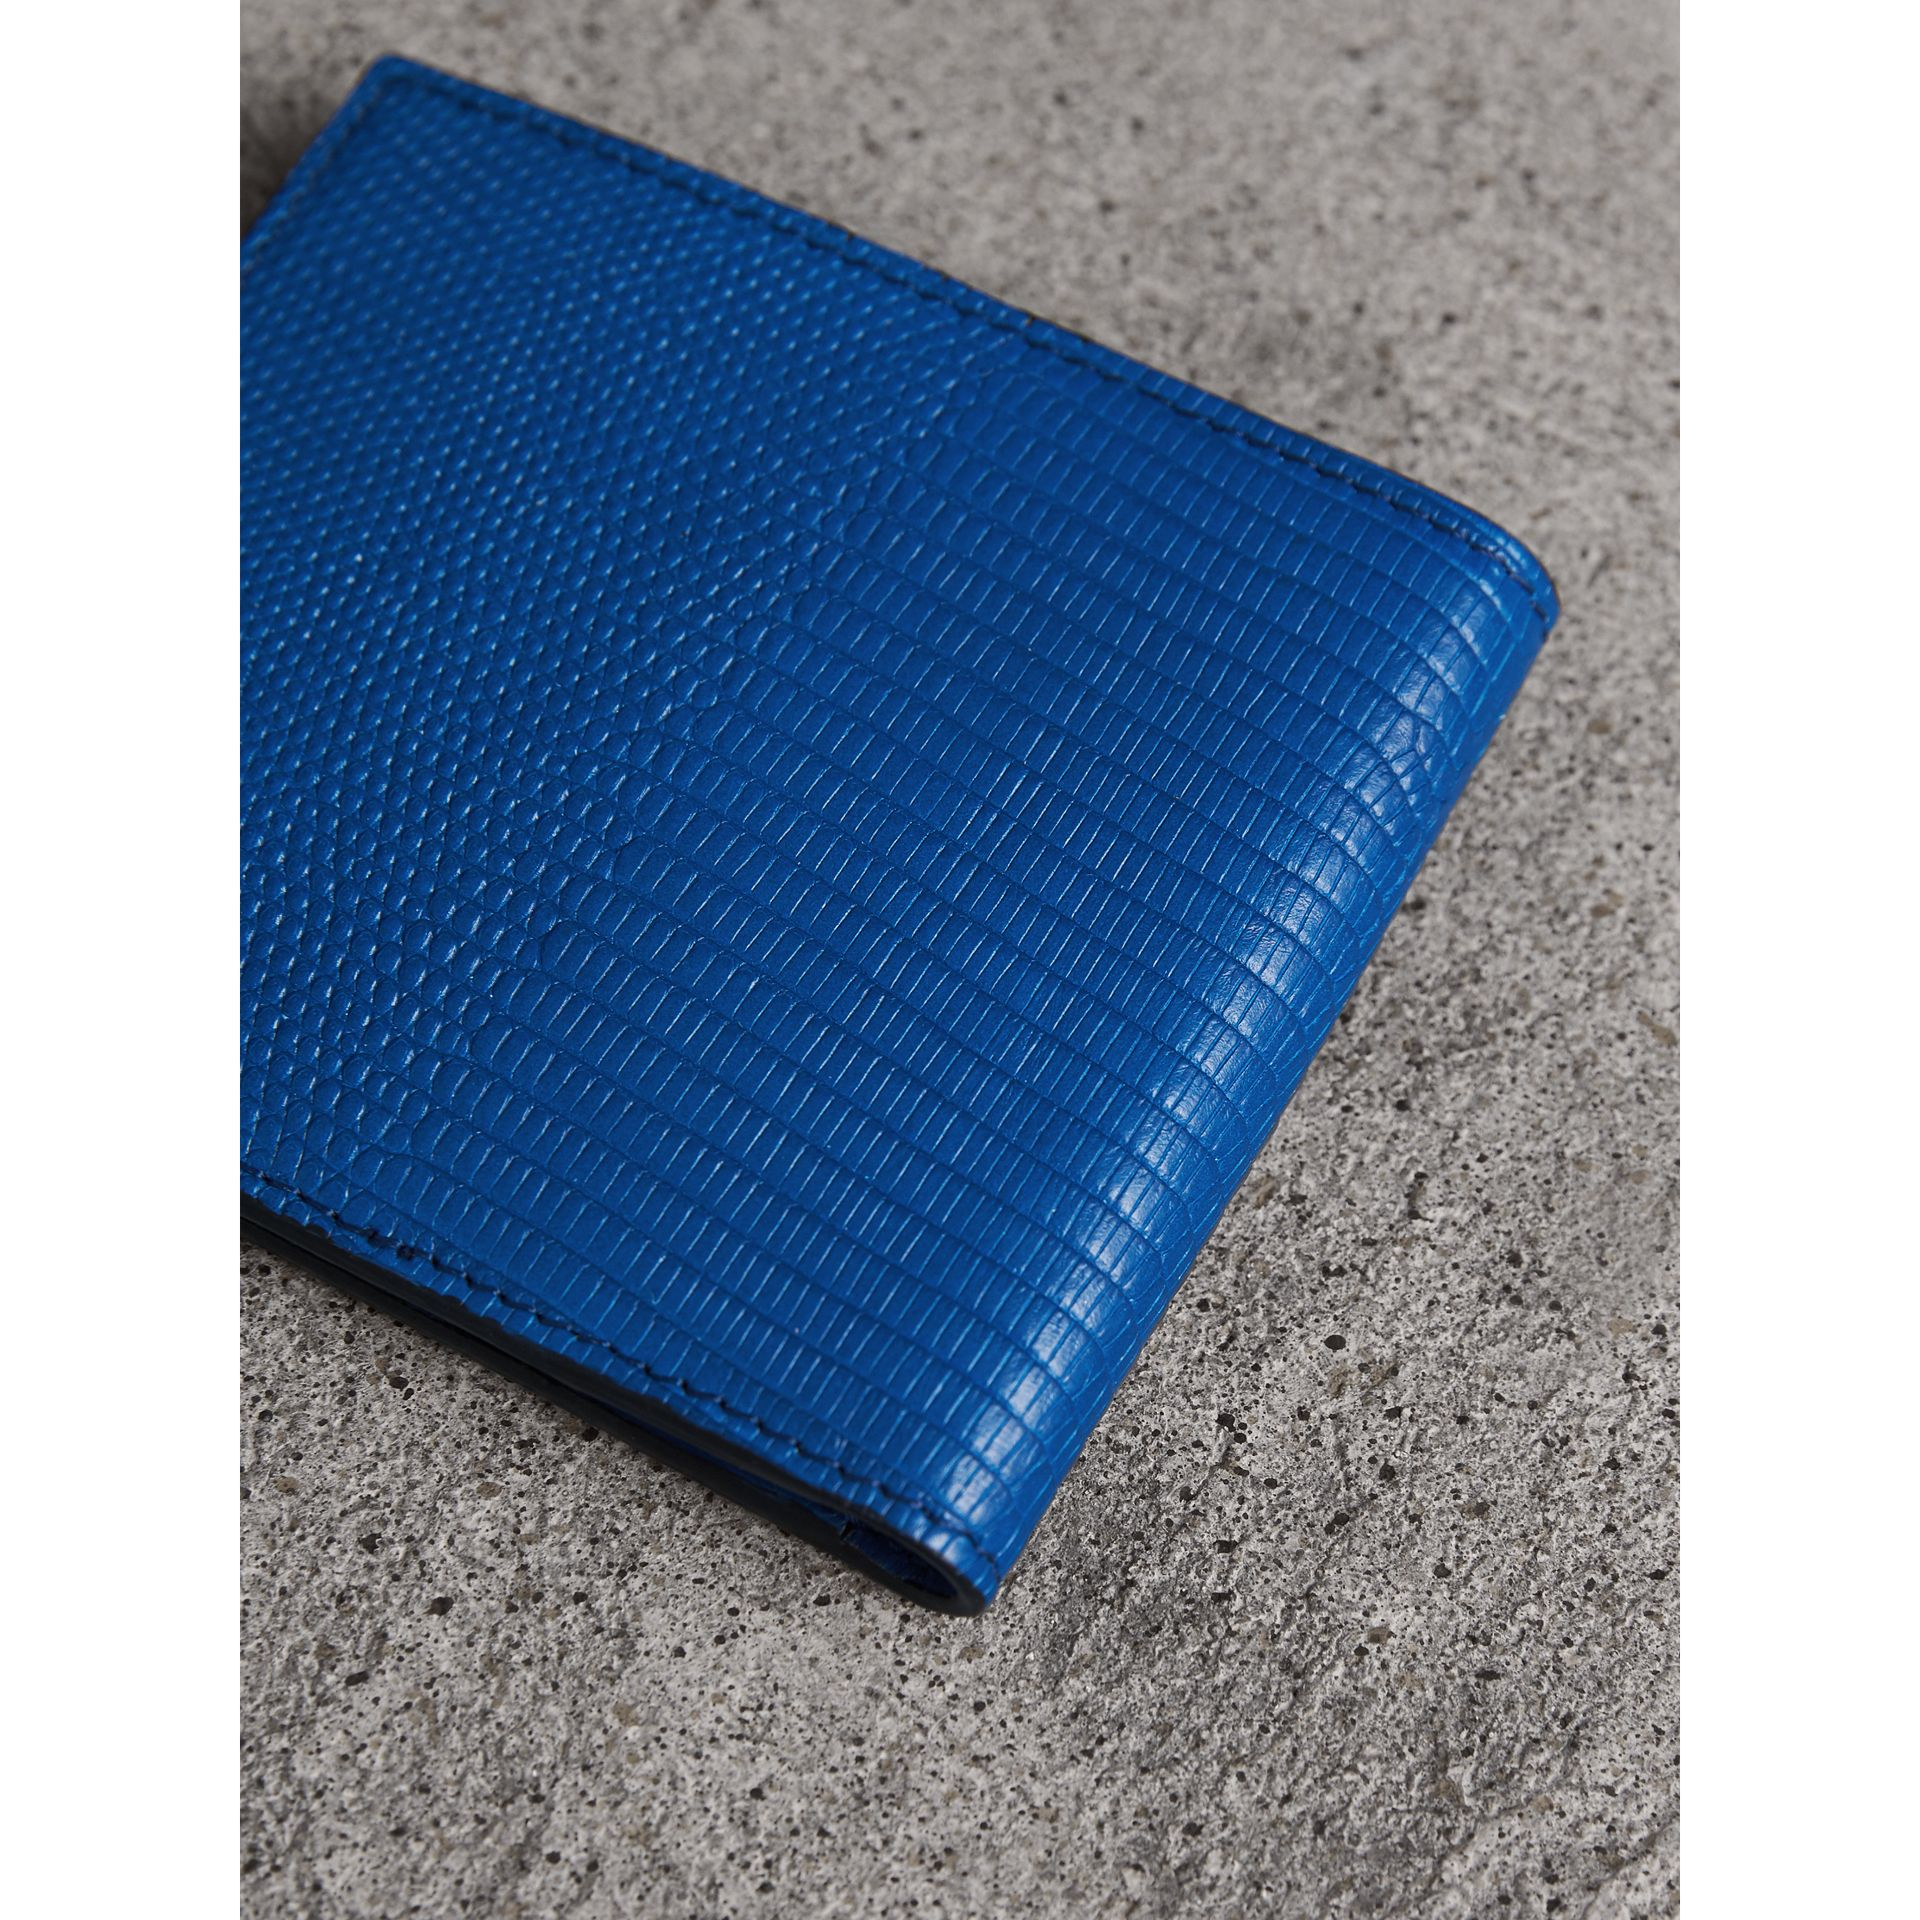 Lizard International Bifold Wallet in Sapphire Blue - Men | Burberry - gallery image 2